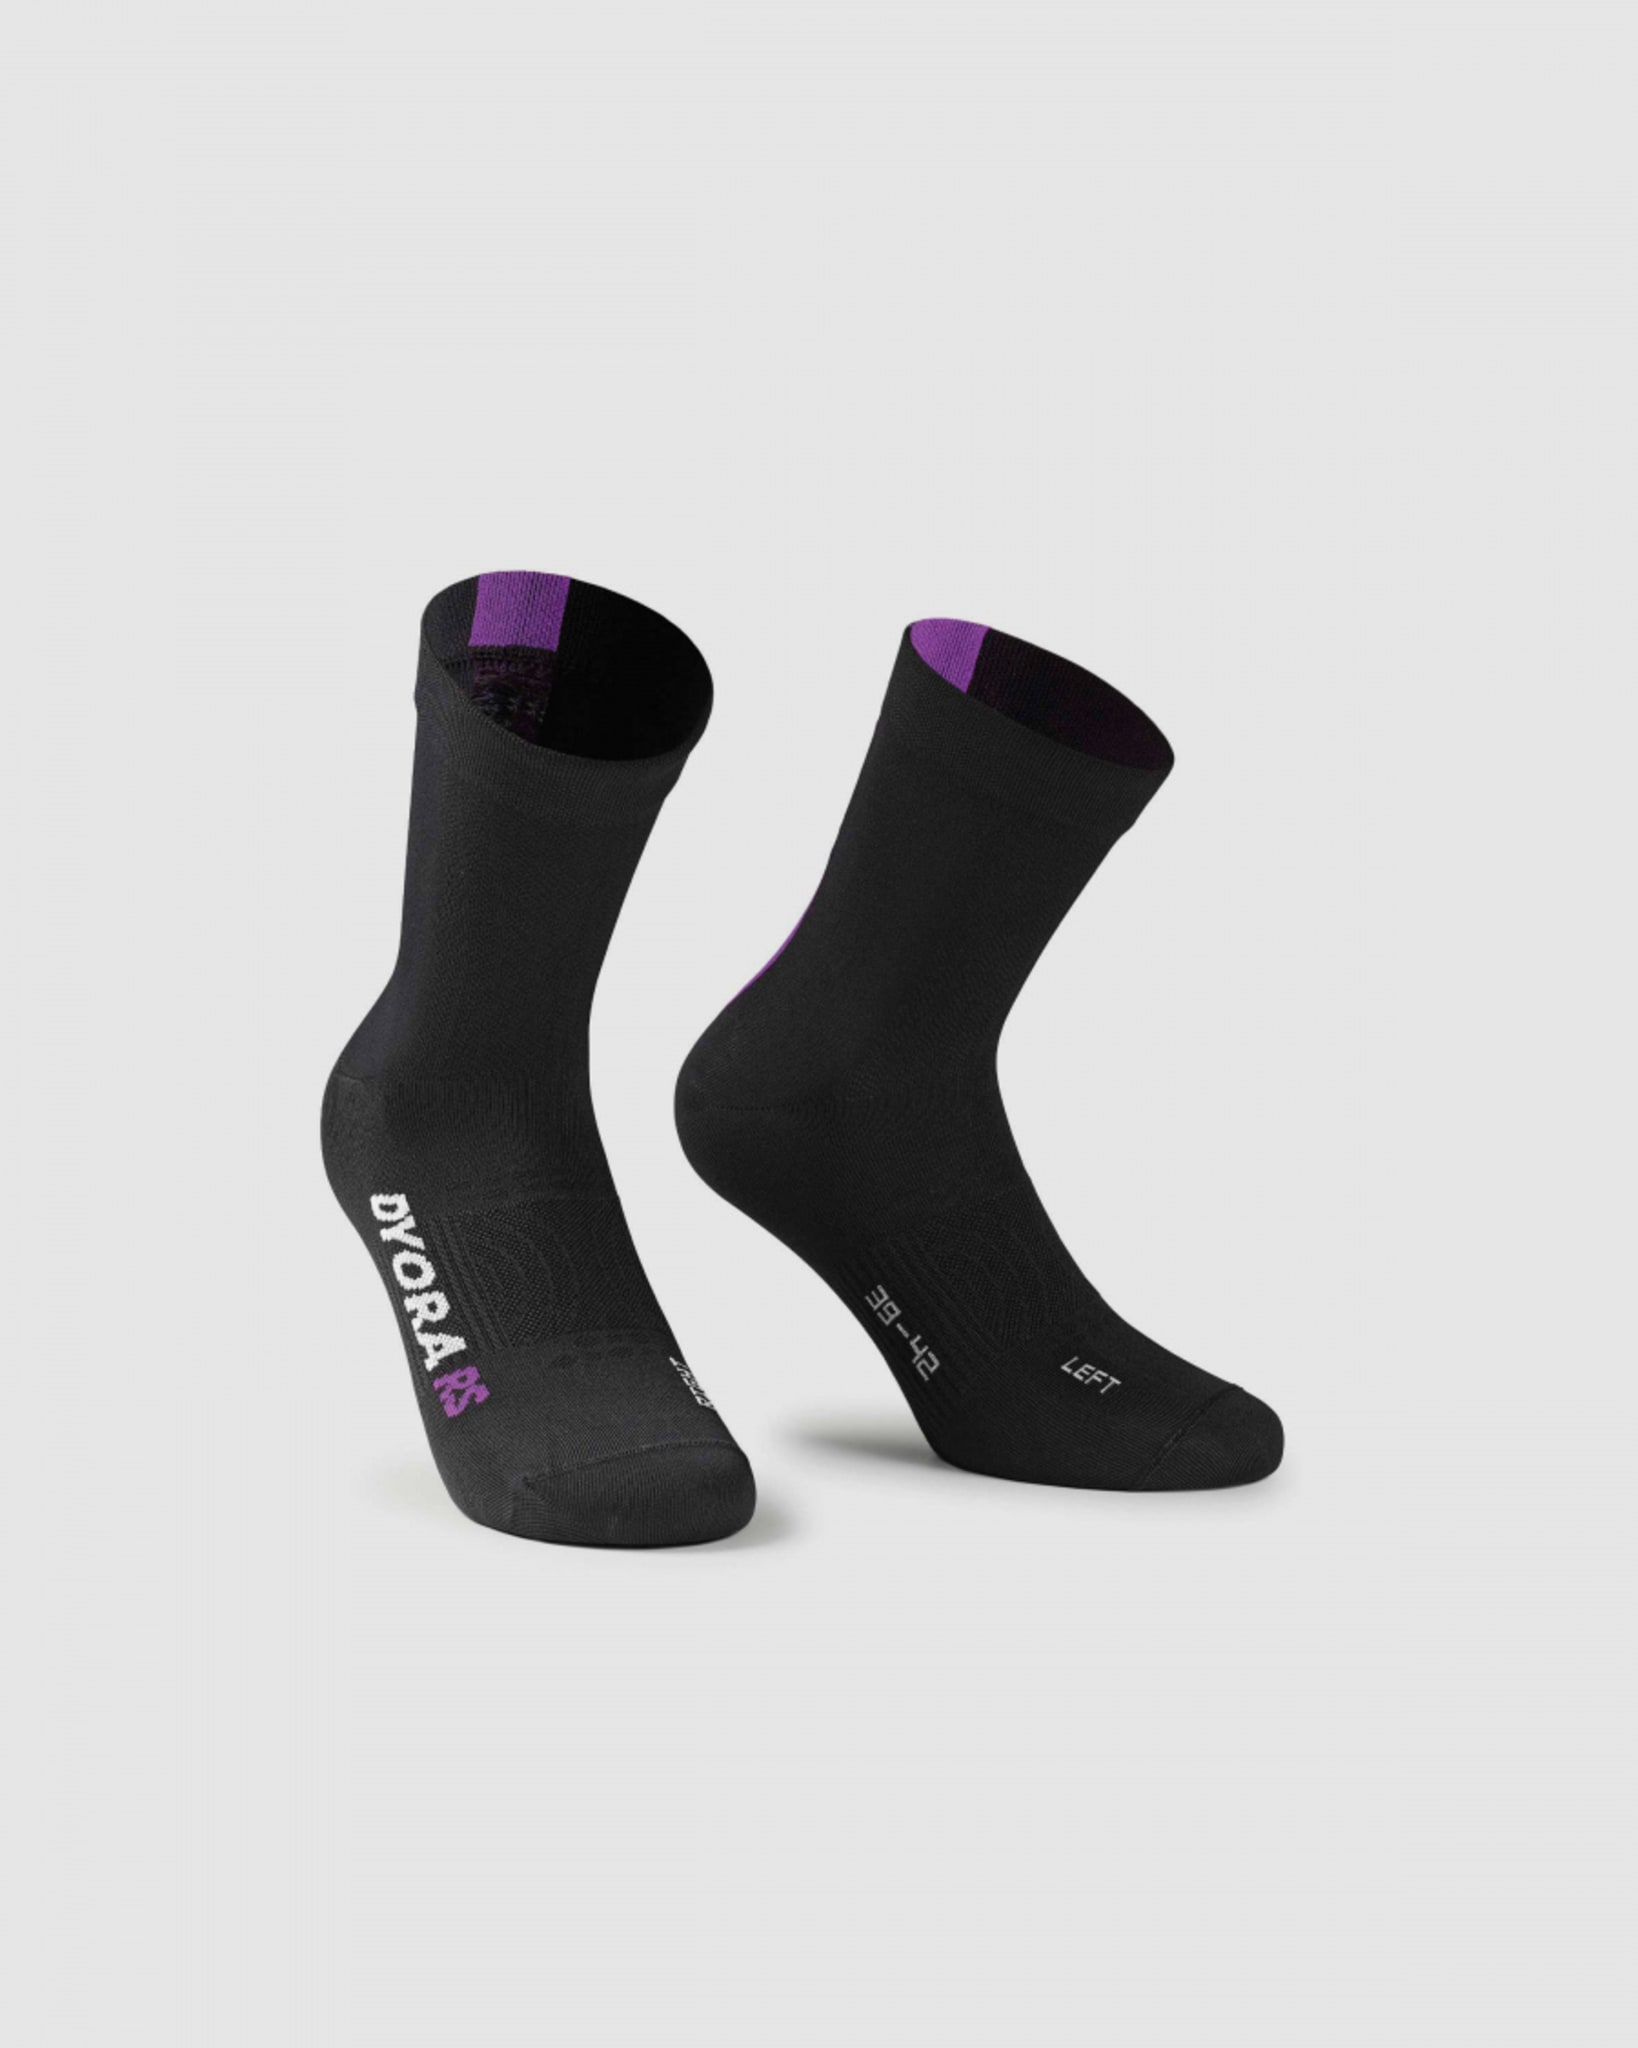 DYORA RS Socks